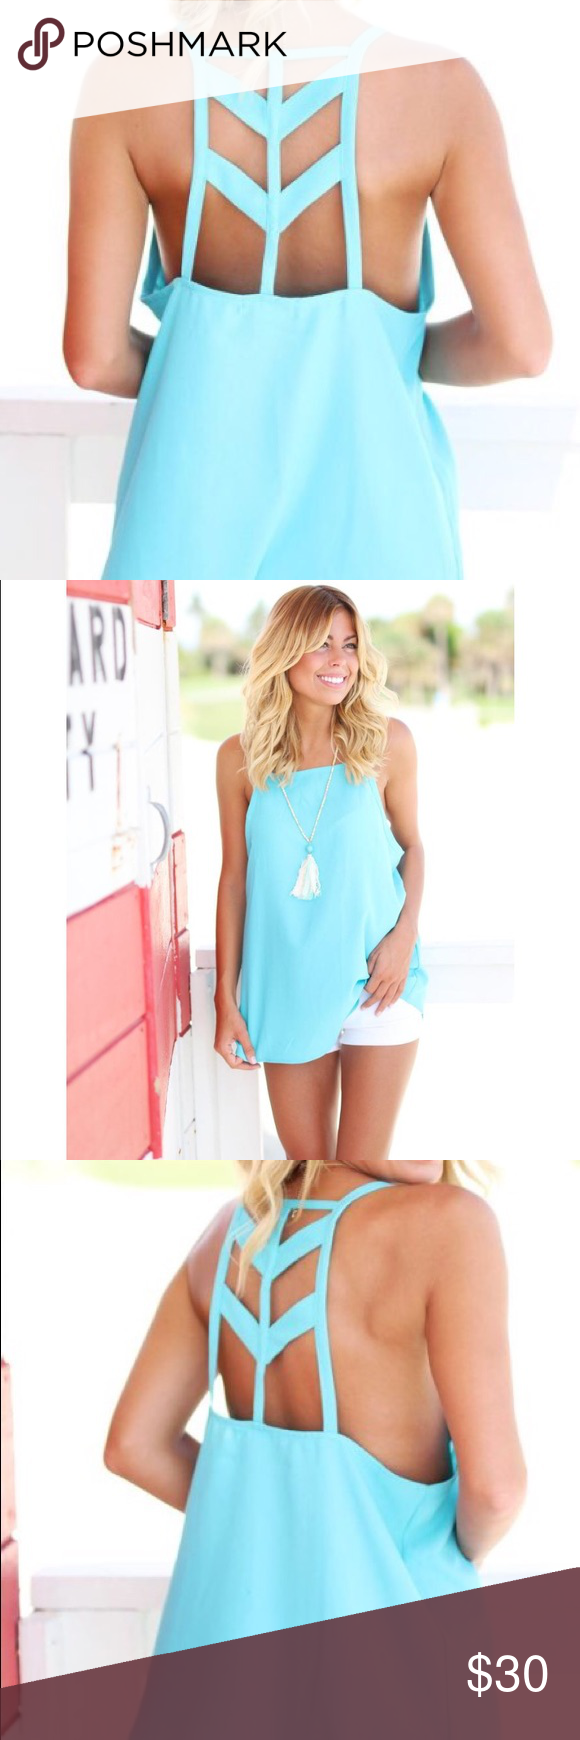 """NWOT Aqua Cut Out Back Top *New Without Tags simply because it was shipped without tags *Never Been Worn Size Medium Fits true to size in bust area Length is 23"""" 100% Polyester Super cute back cut out detail Perfect top to wear at the beach!! ✅Ⓜ️ercari Tops Tank Tops"""